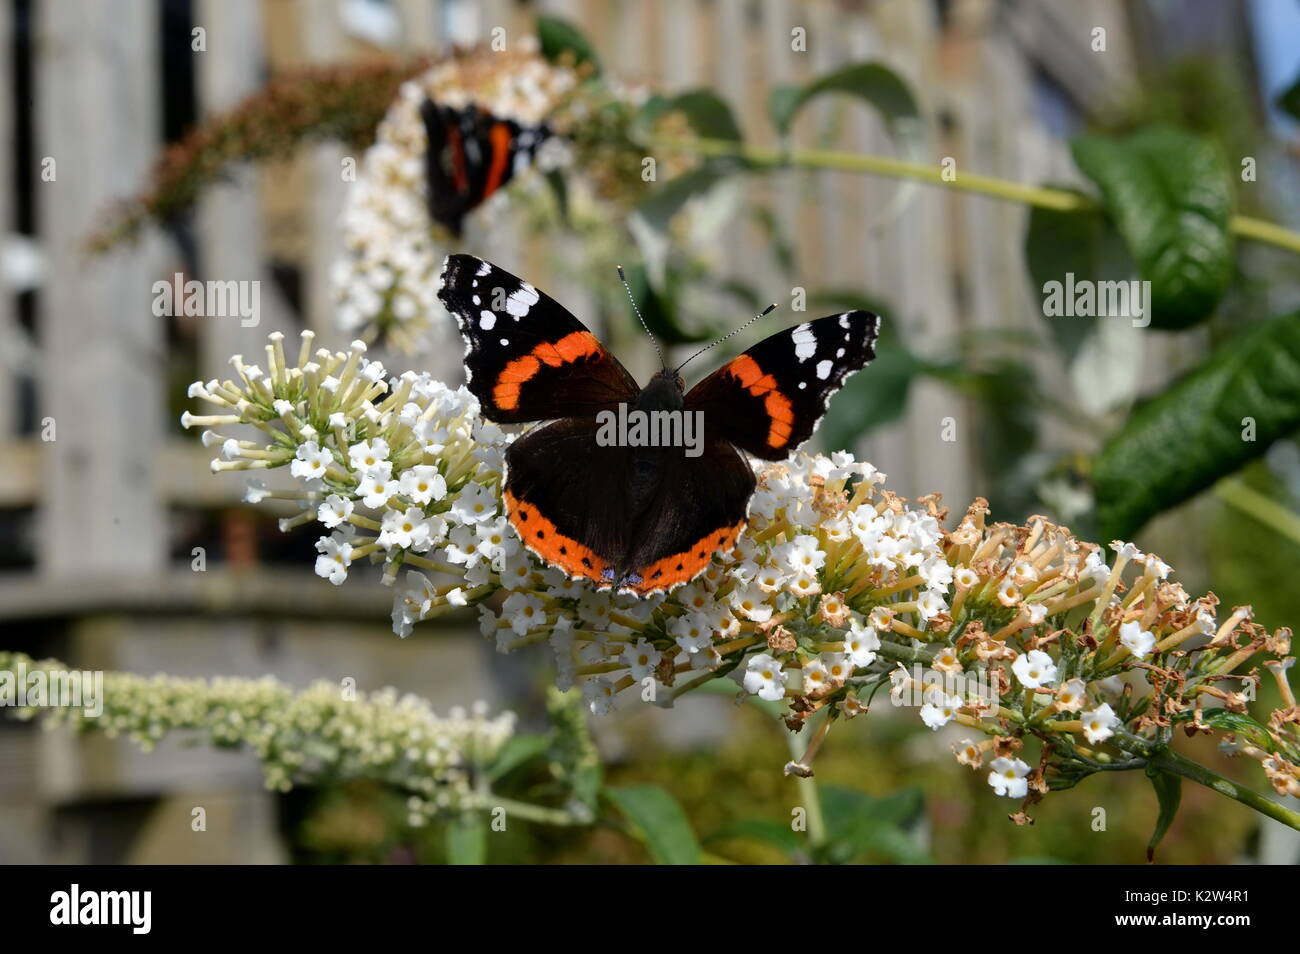 red admiral on buddleia flowers. Open wings show distinctive red white and black markings - Stock Image